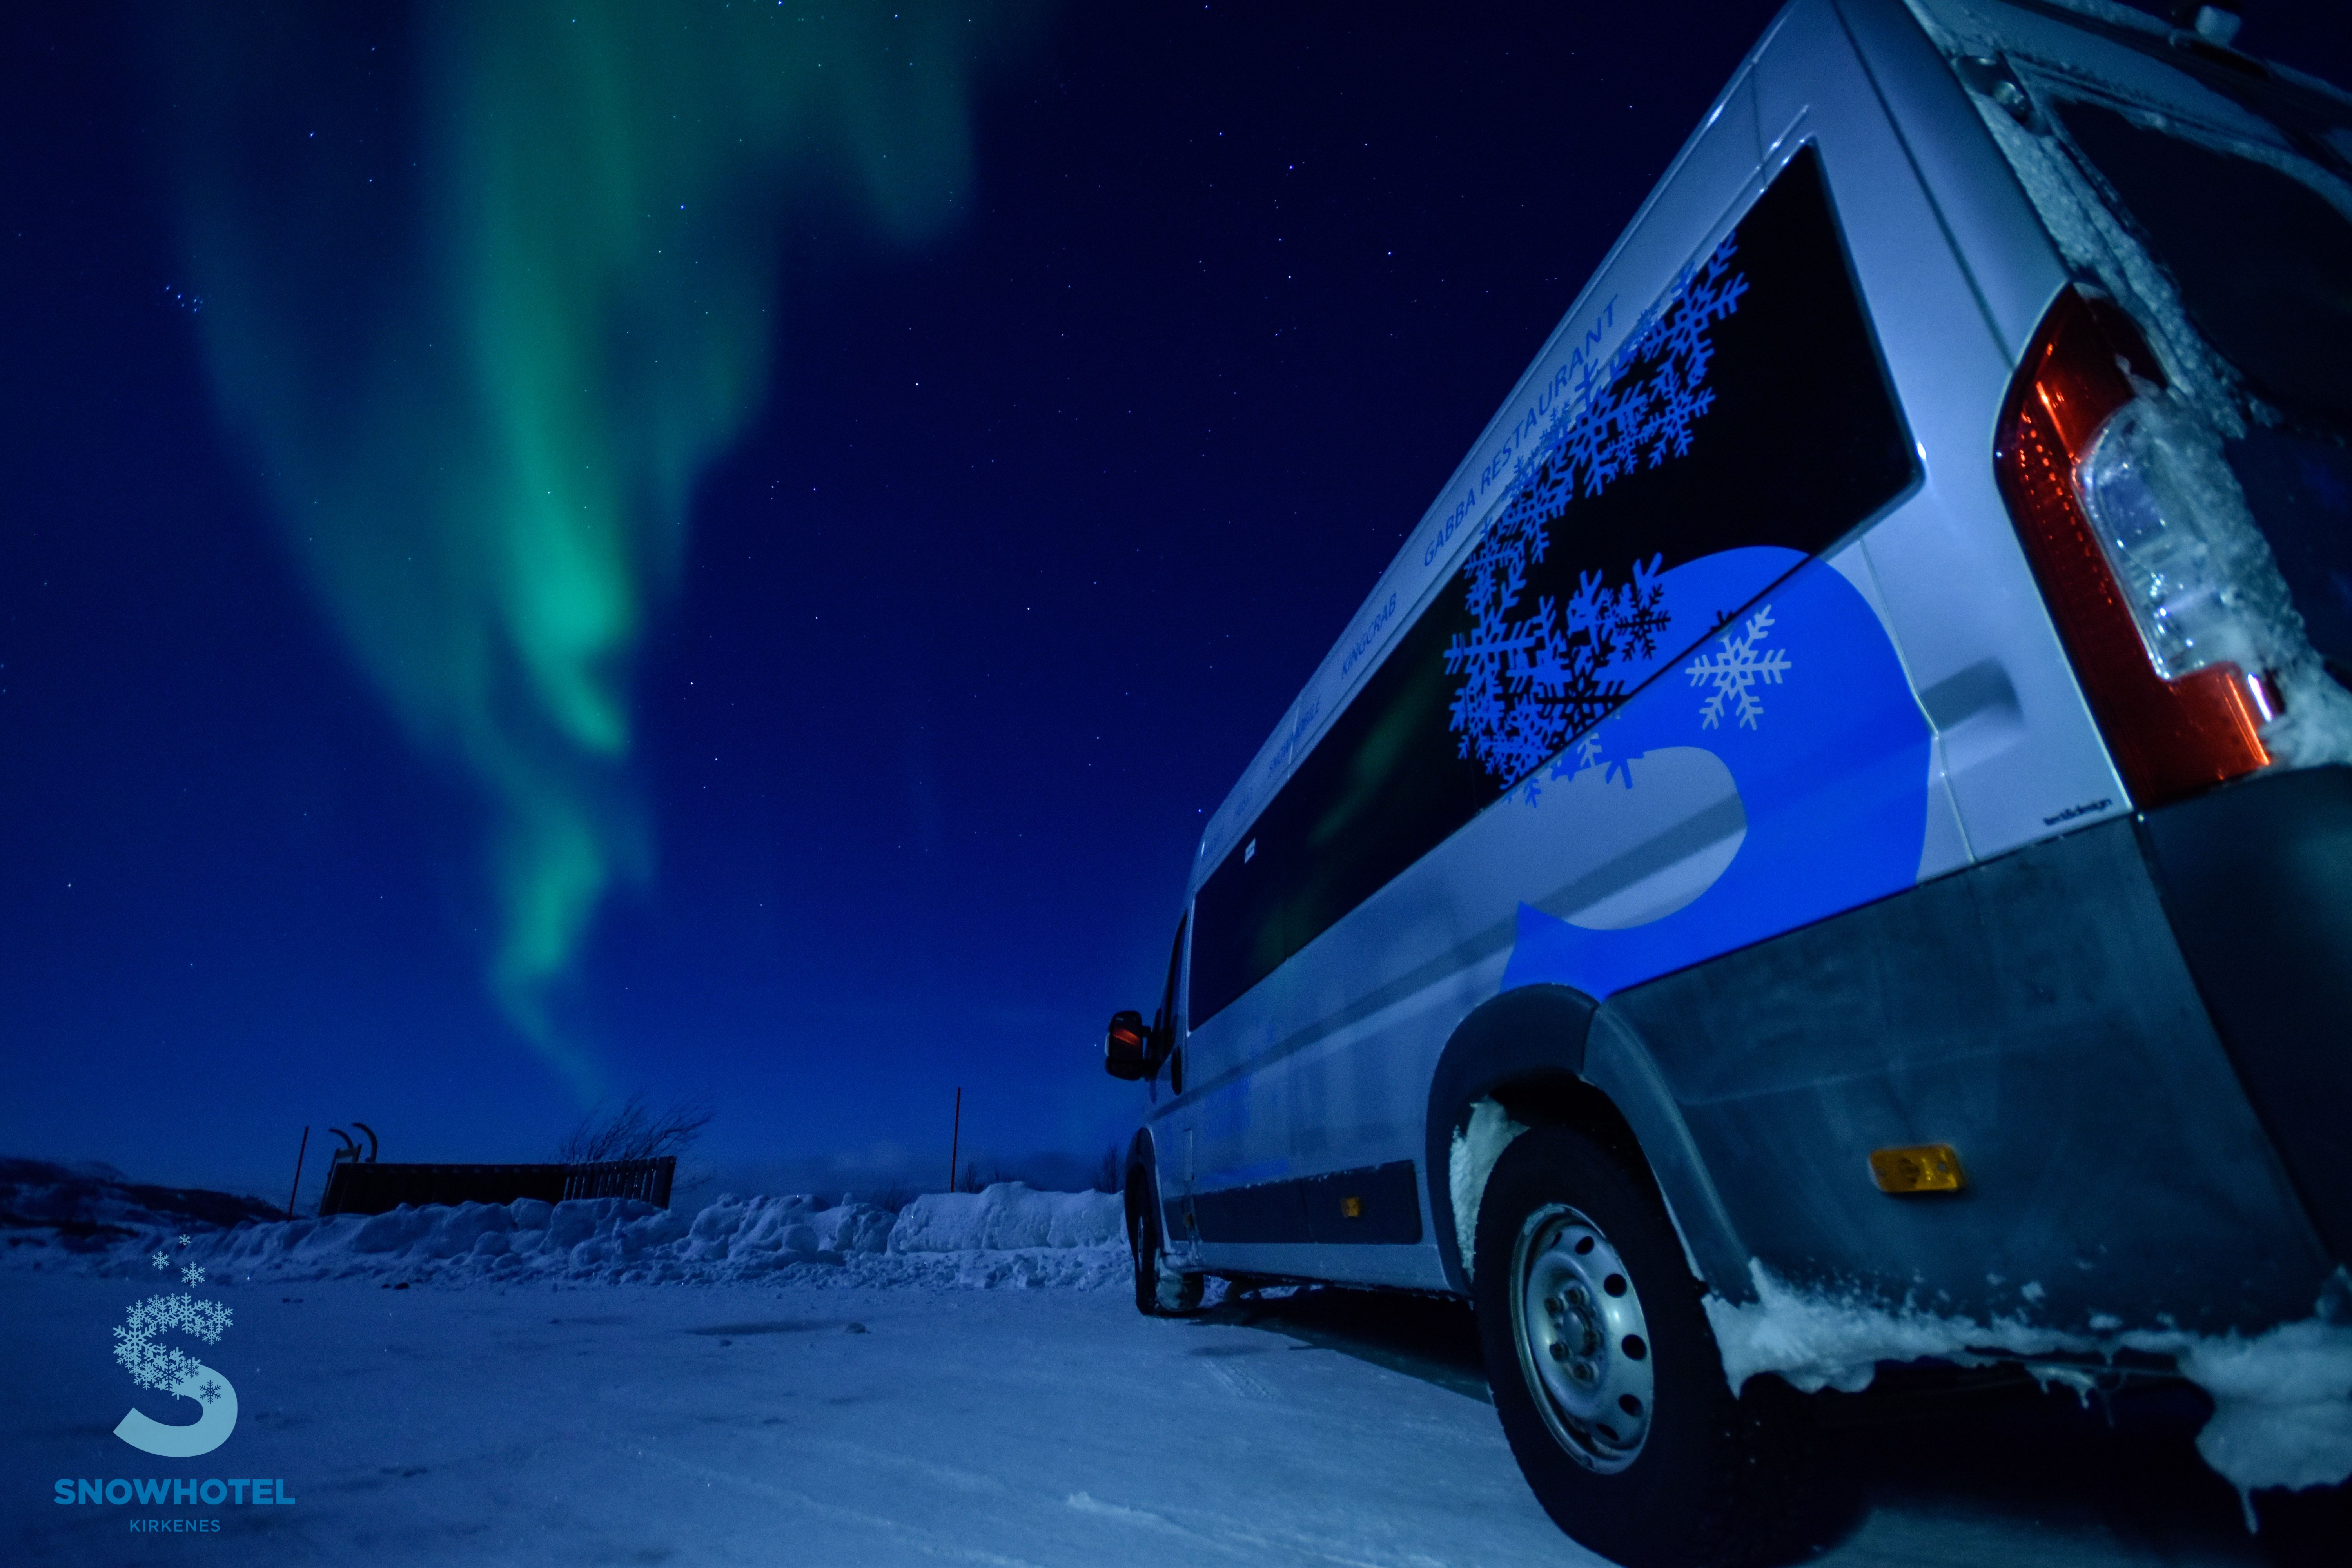 © Snowhotel Kirkenes, SnowHotel Kirkenes - Hunting northern lights with bus